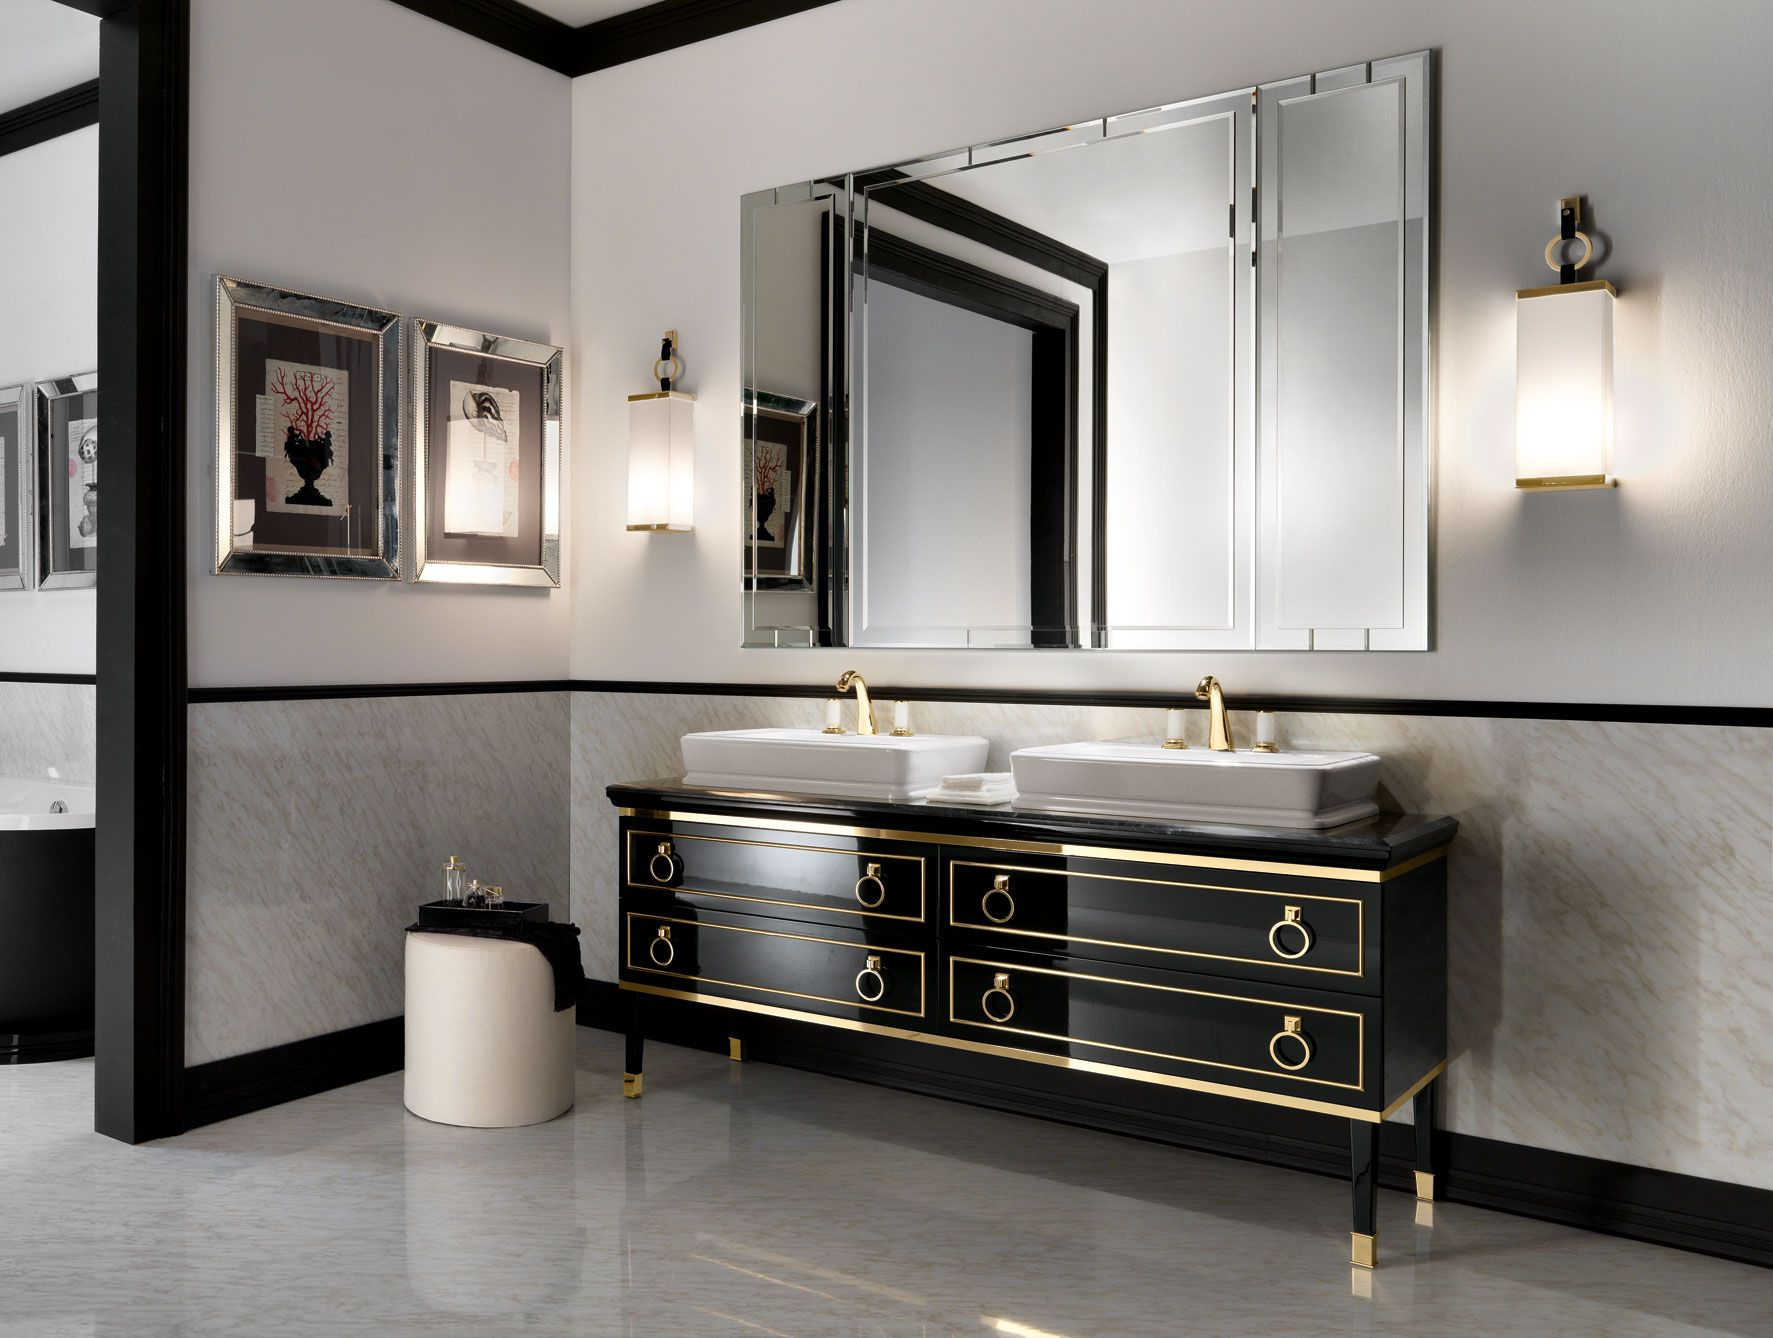 in vogue two rectangle washbasin for black vanities also square wall mirror added pair of vanity lights luxury art deco bathroom designs accessories furniture cabinet a